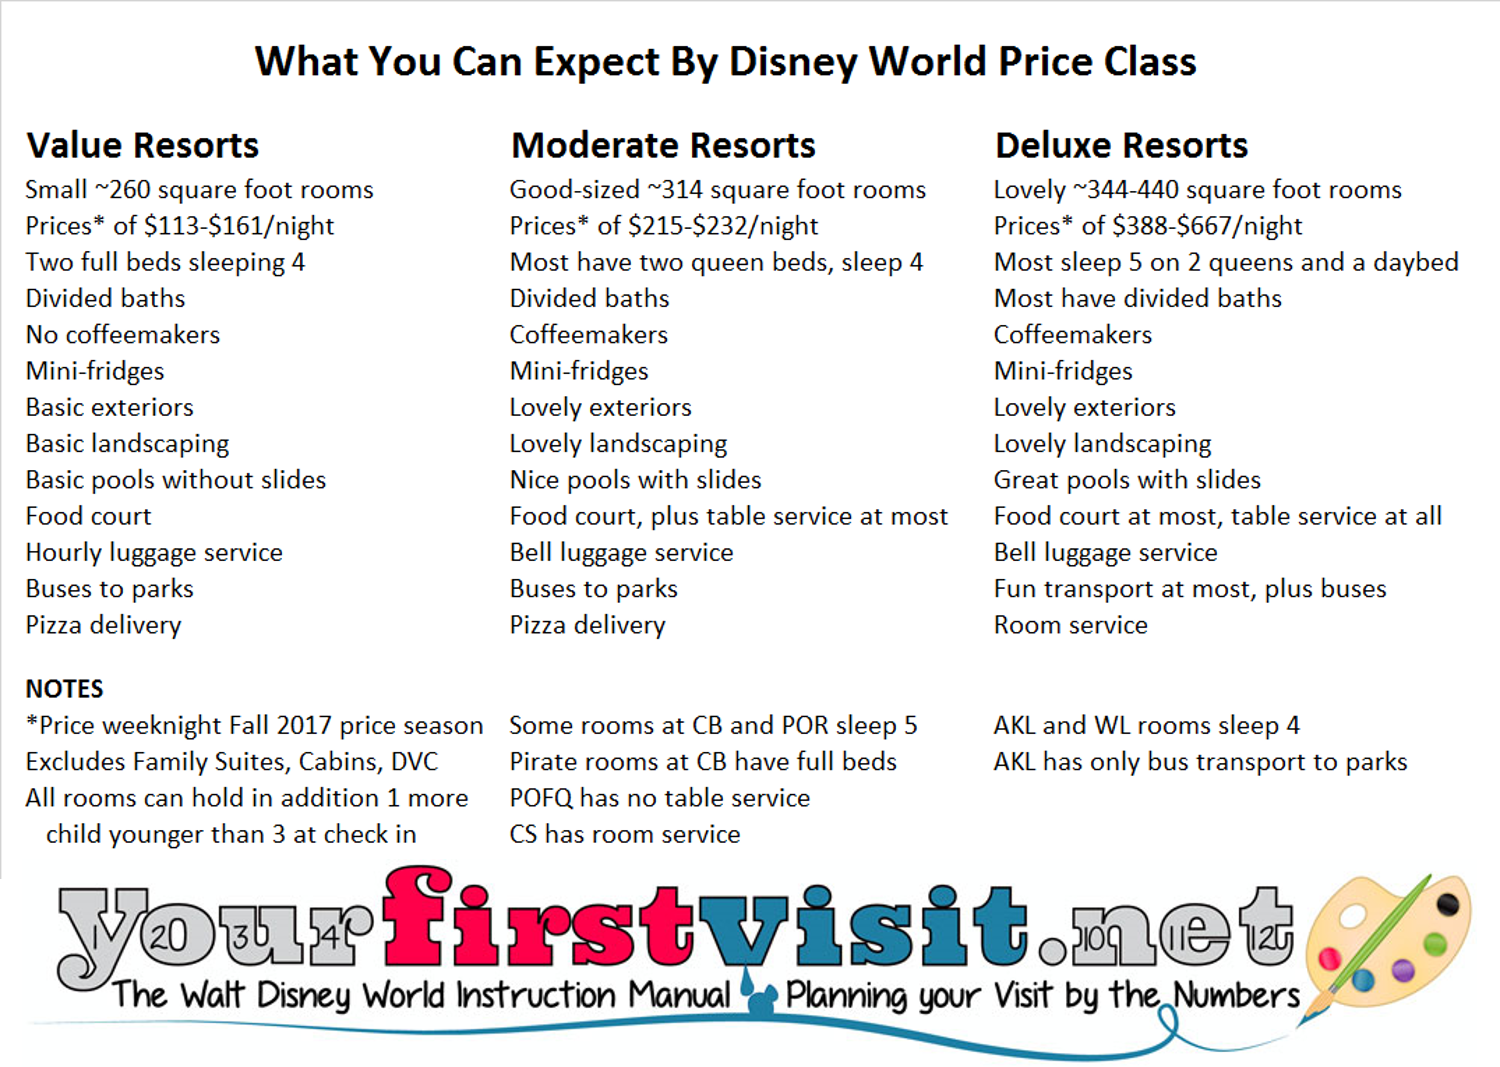 What You Can Expect By Disney World Price Class from yourfirstvisit.net